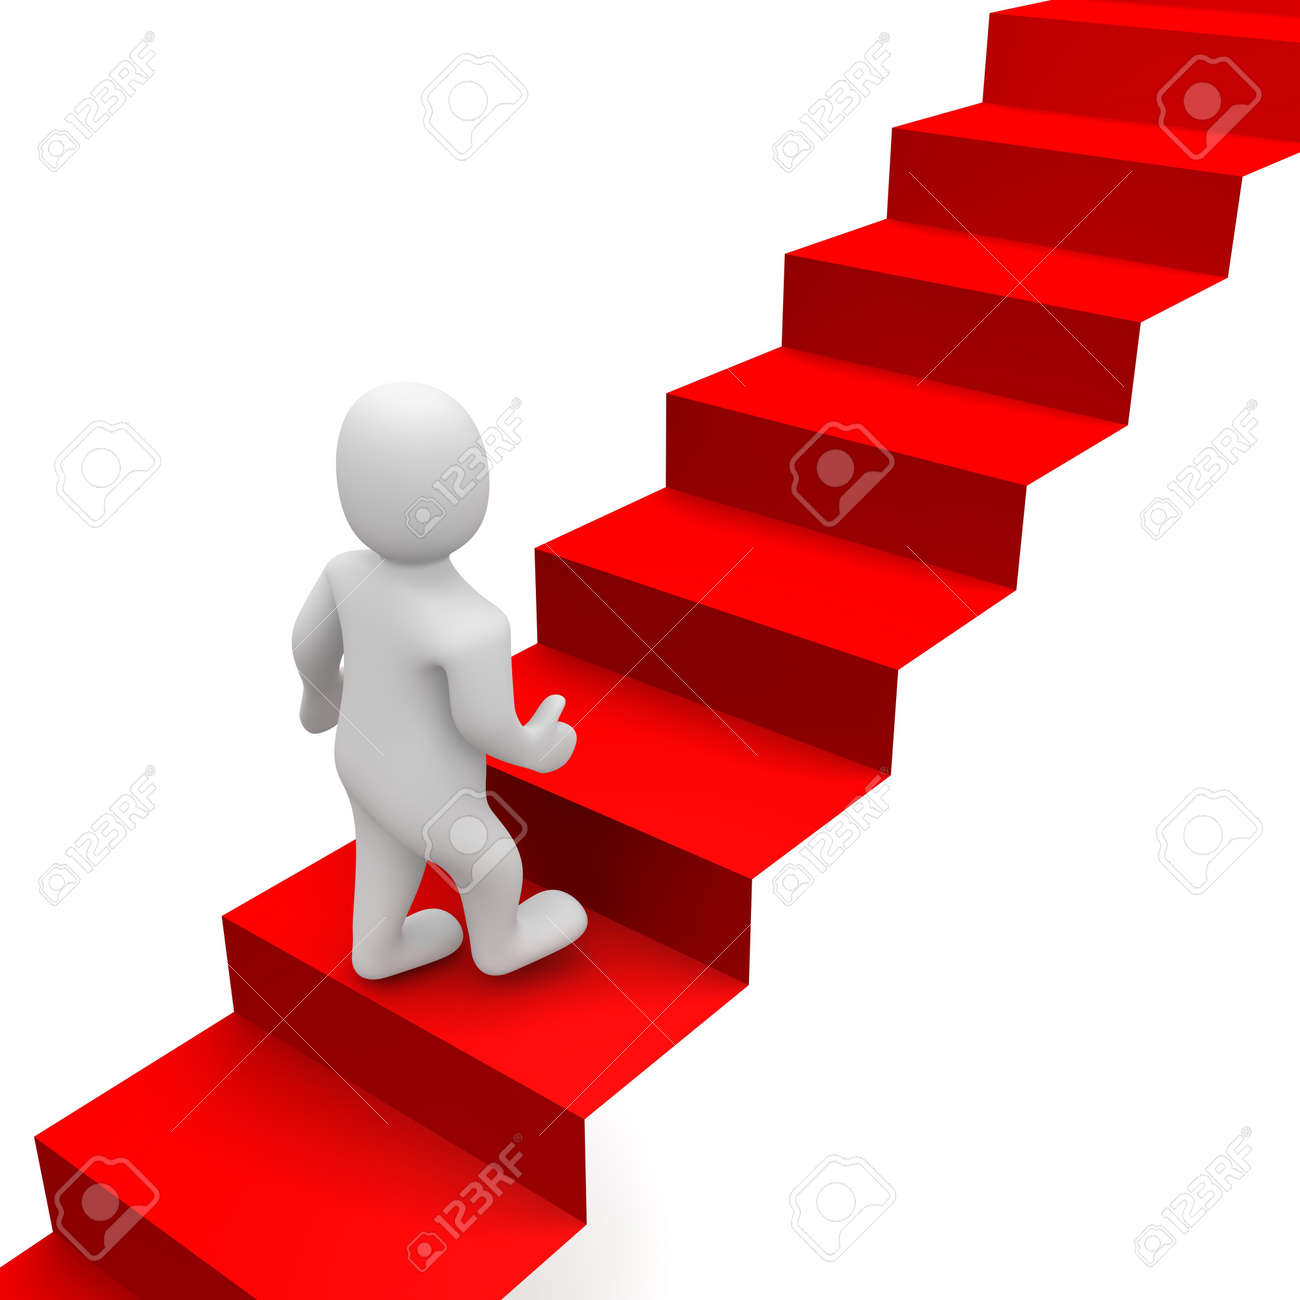 Man and red carpet stairs. 3d rendered illustration. Stock Photo - 7936963